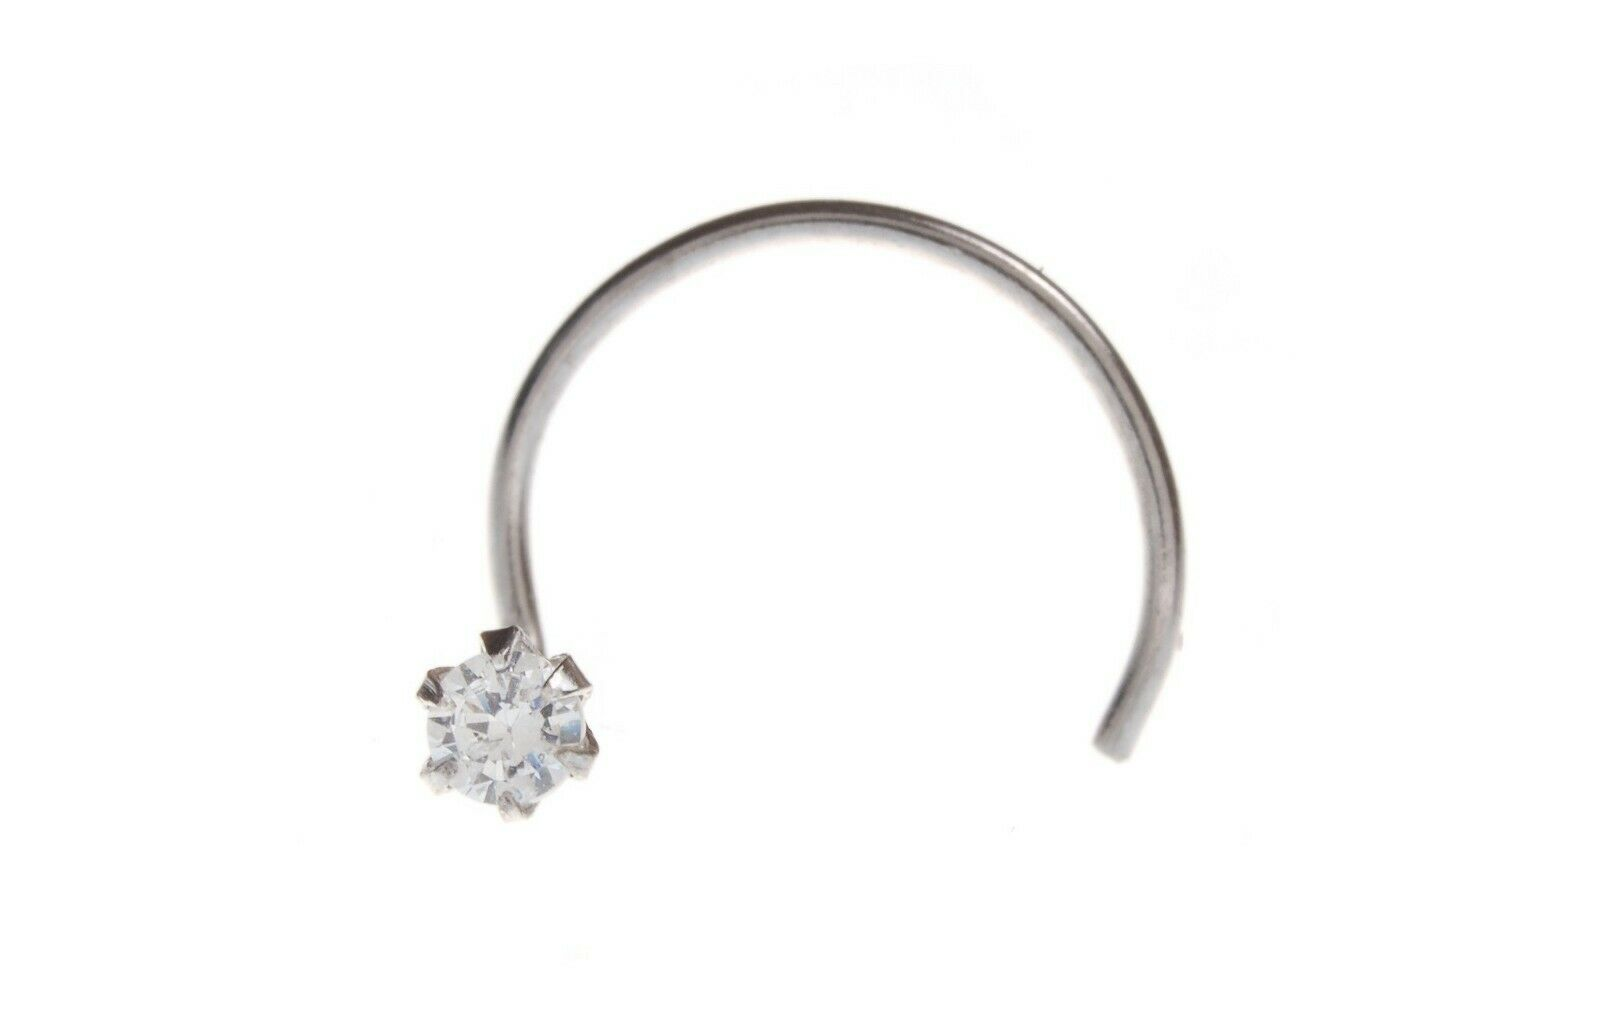 18ct White Gold Nose Stud with a Cubic Zirconia Stone (2.5mm) NS-4690